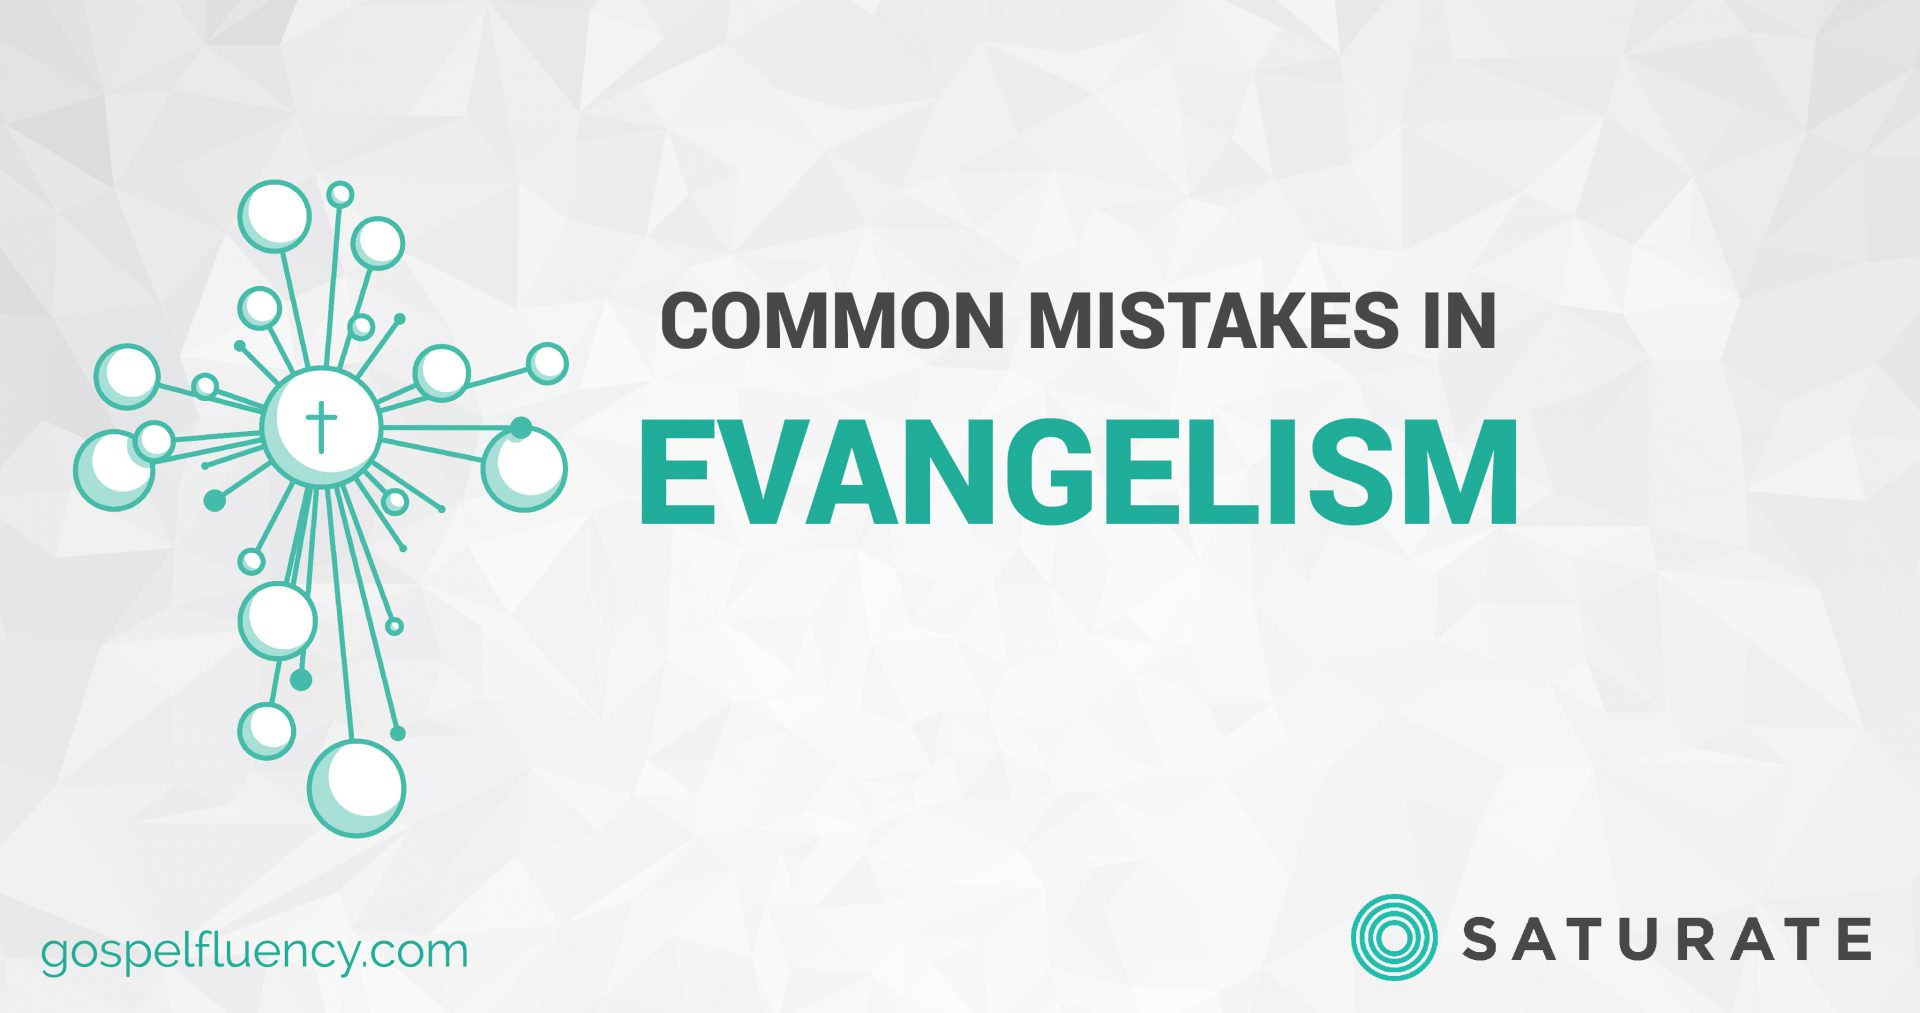 Our Most Common Evangelism Mistake